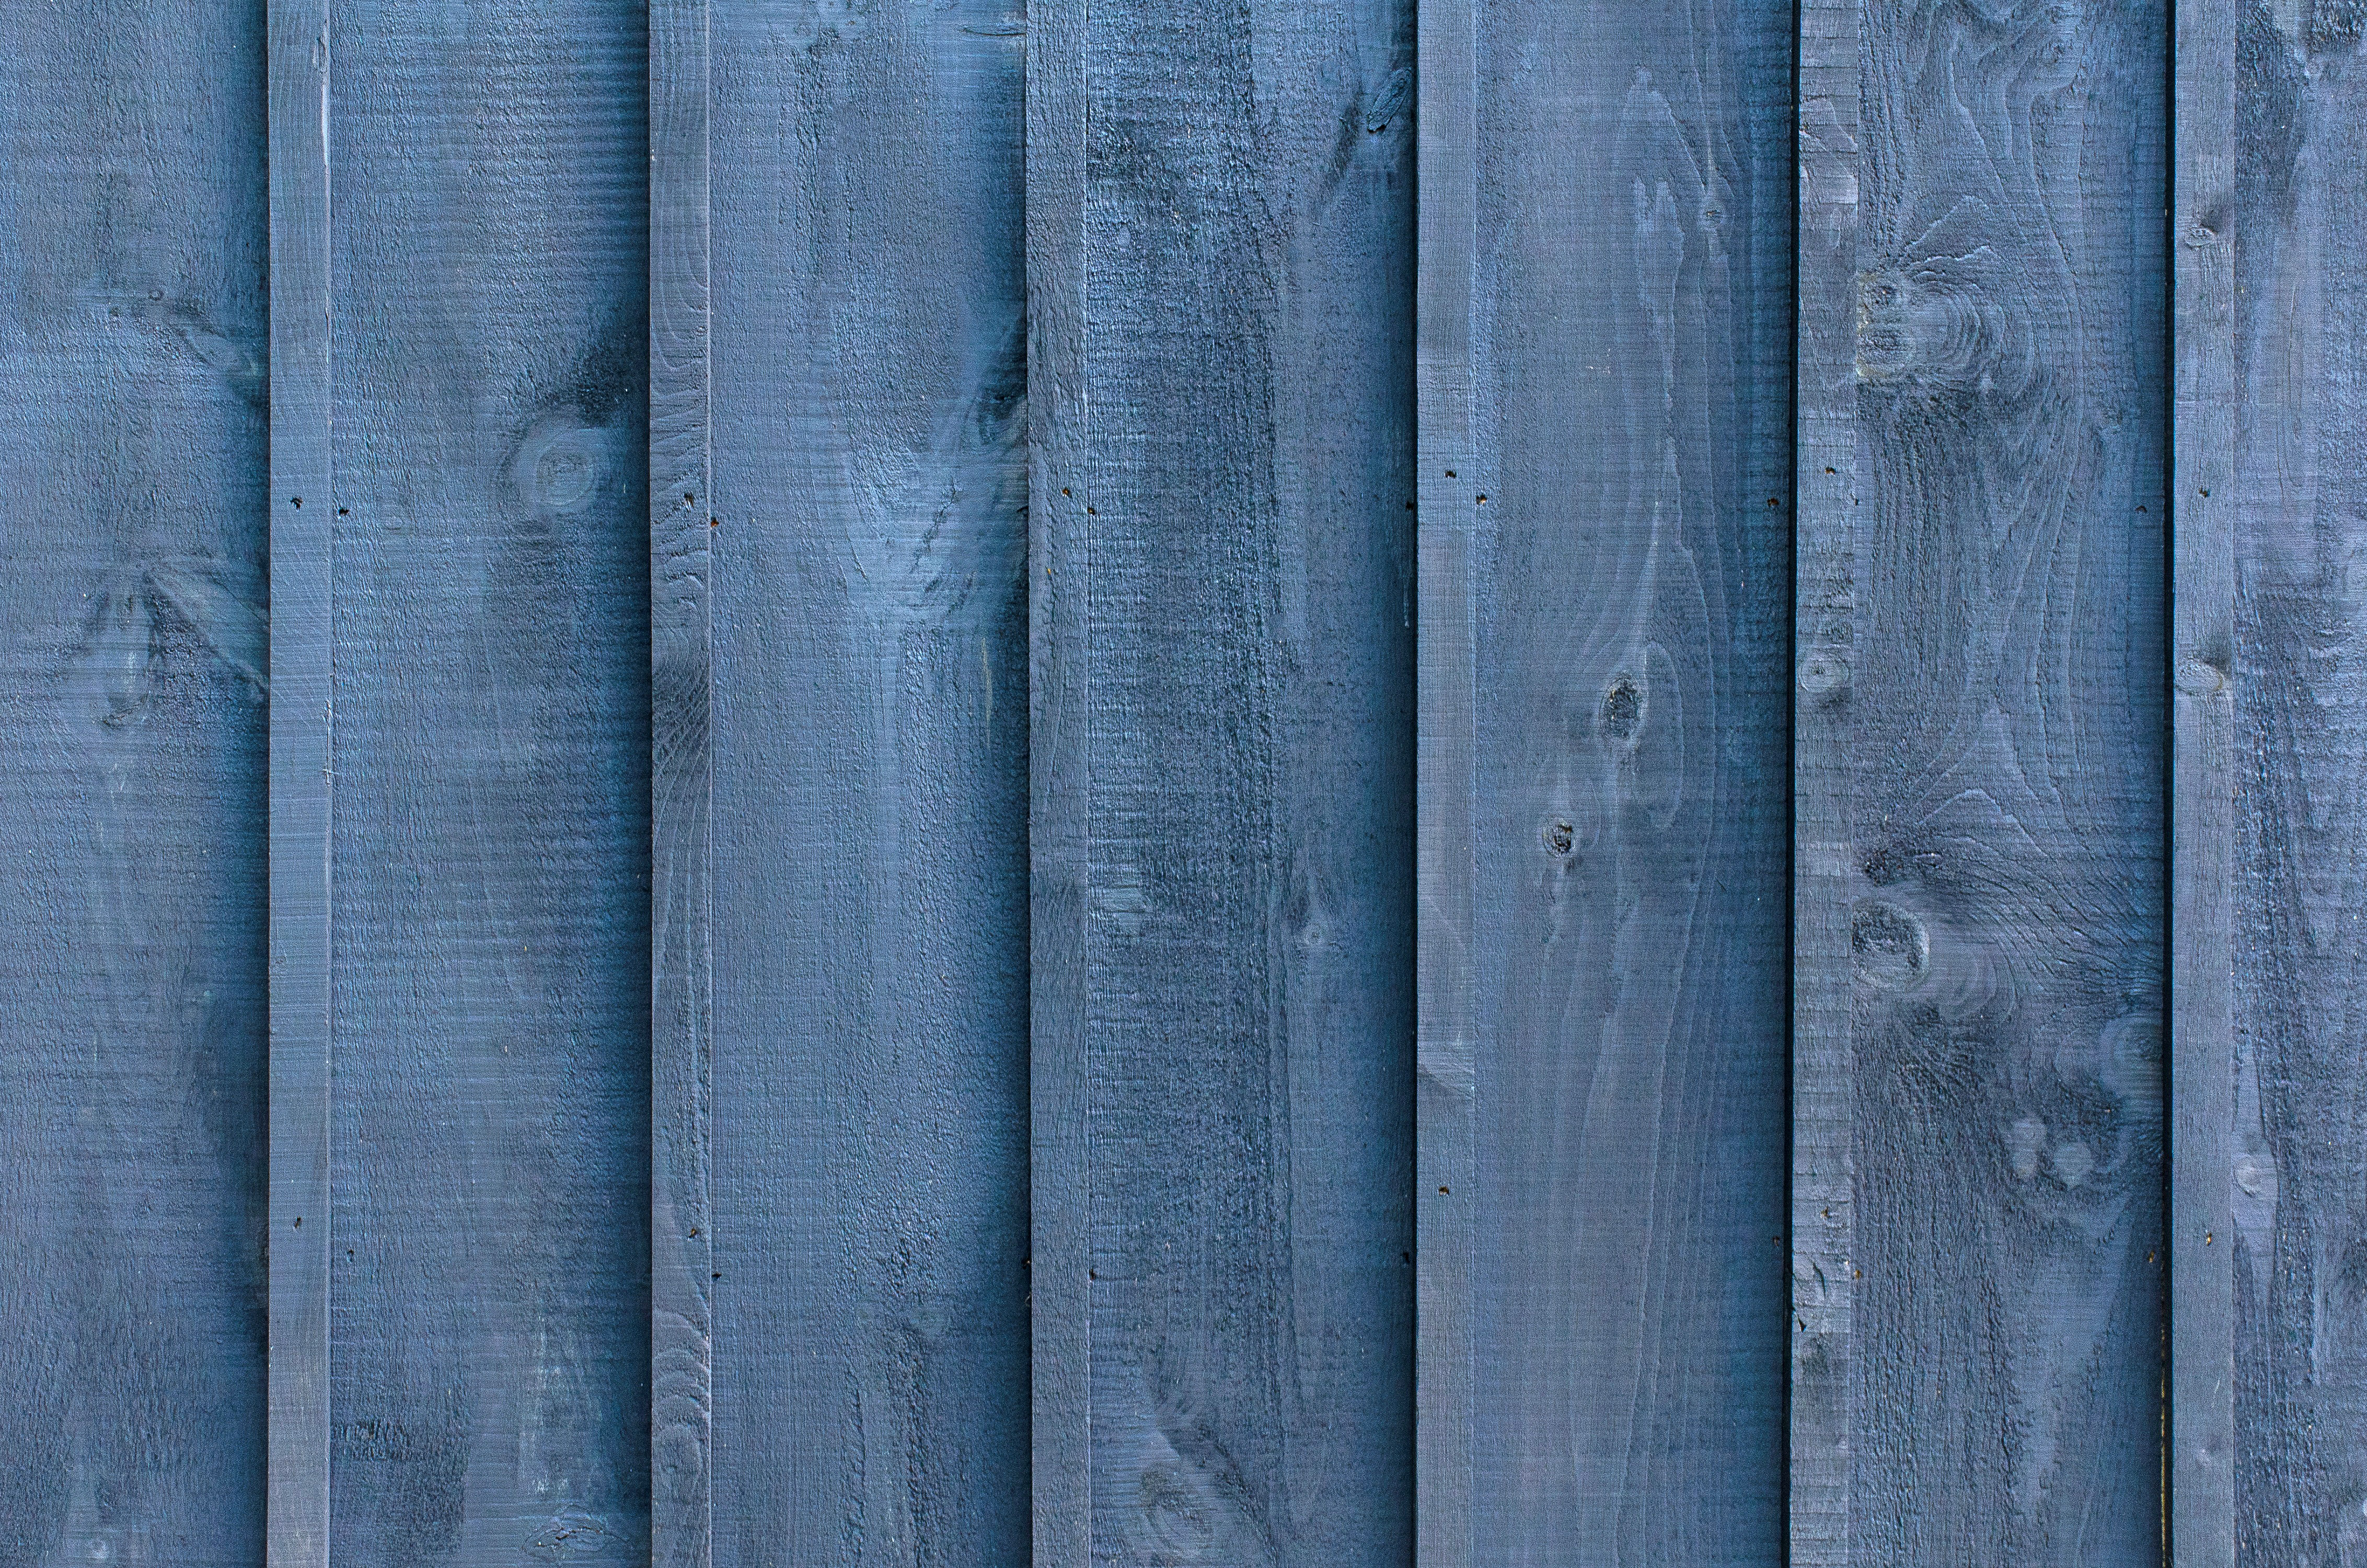 Wooden Boards Texture Background Image